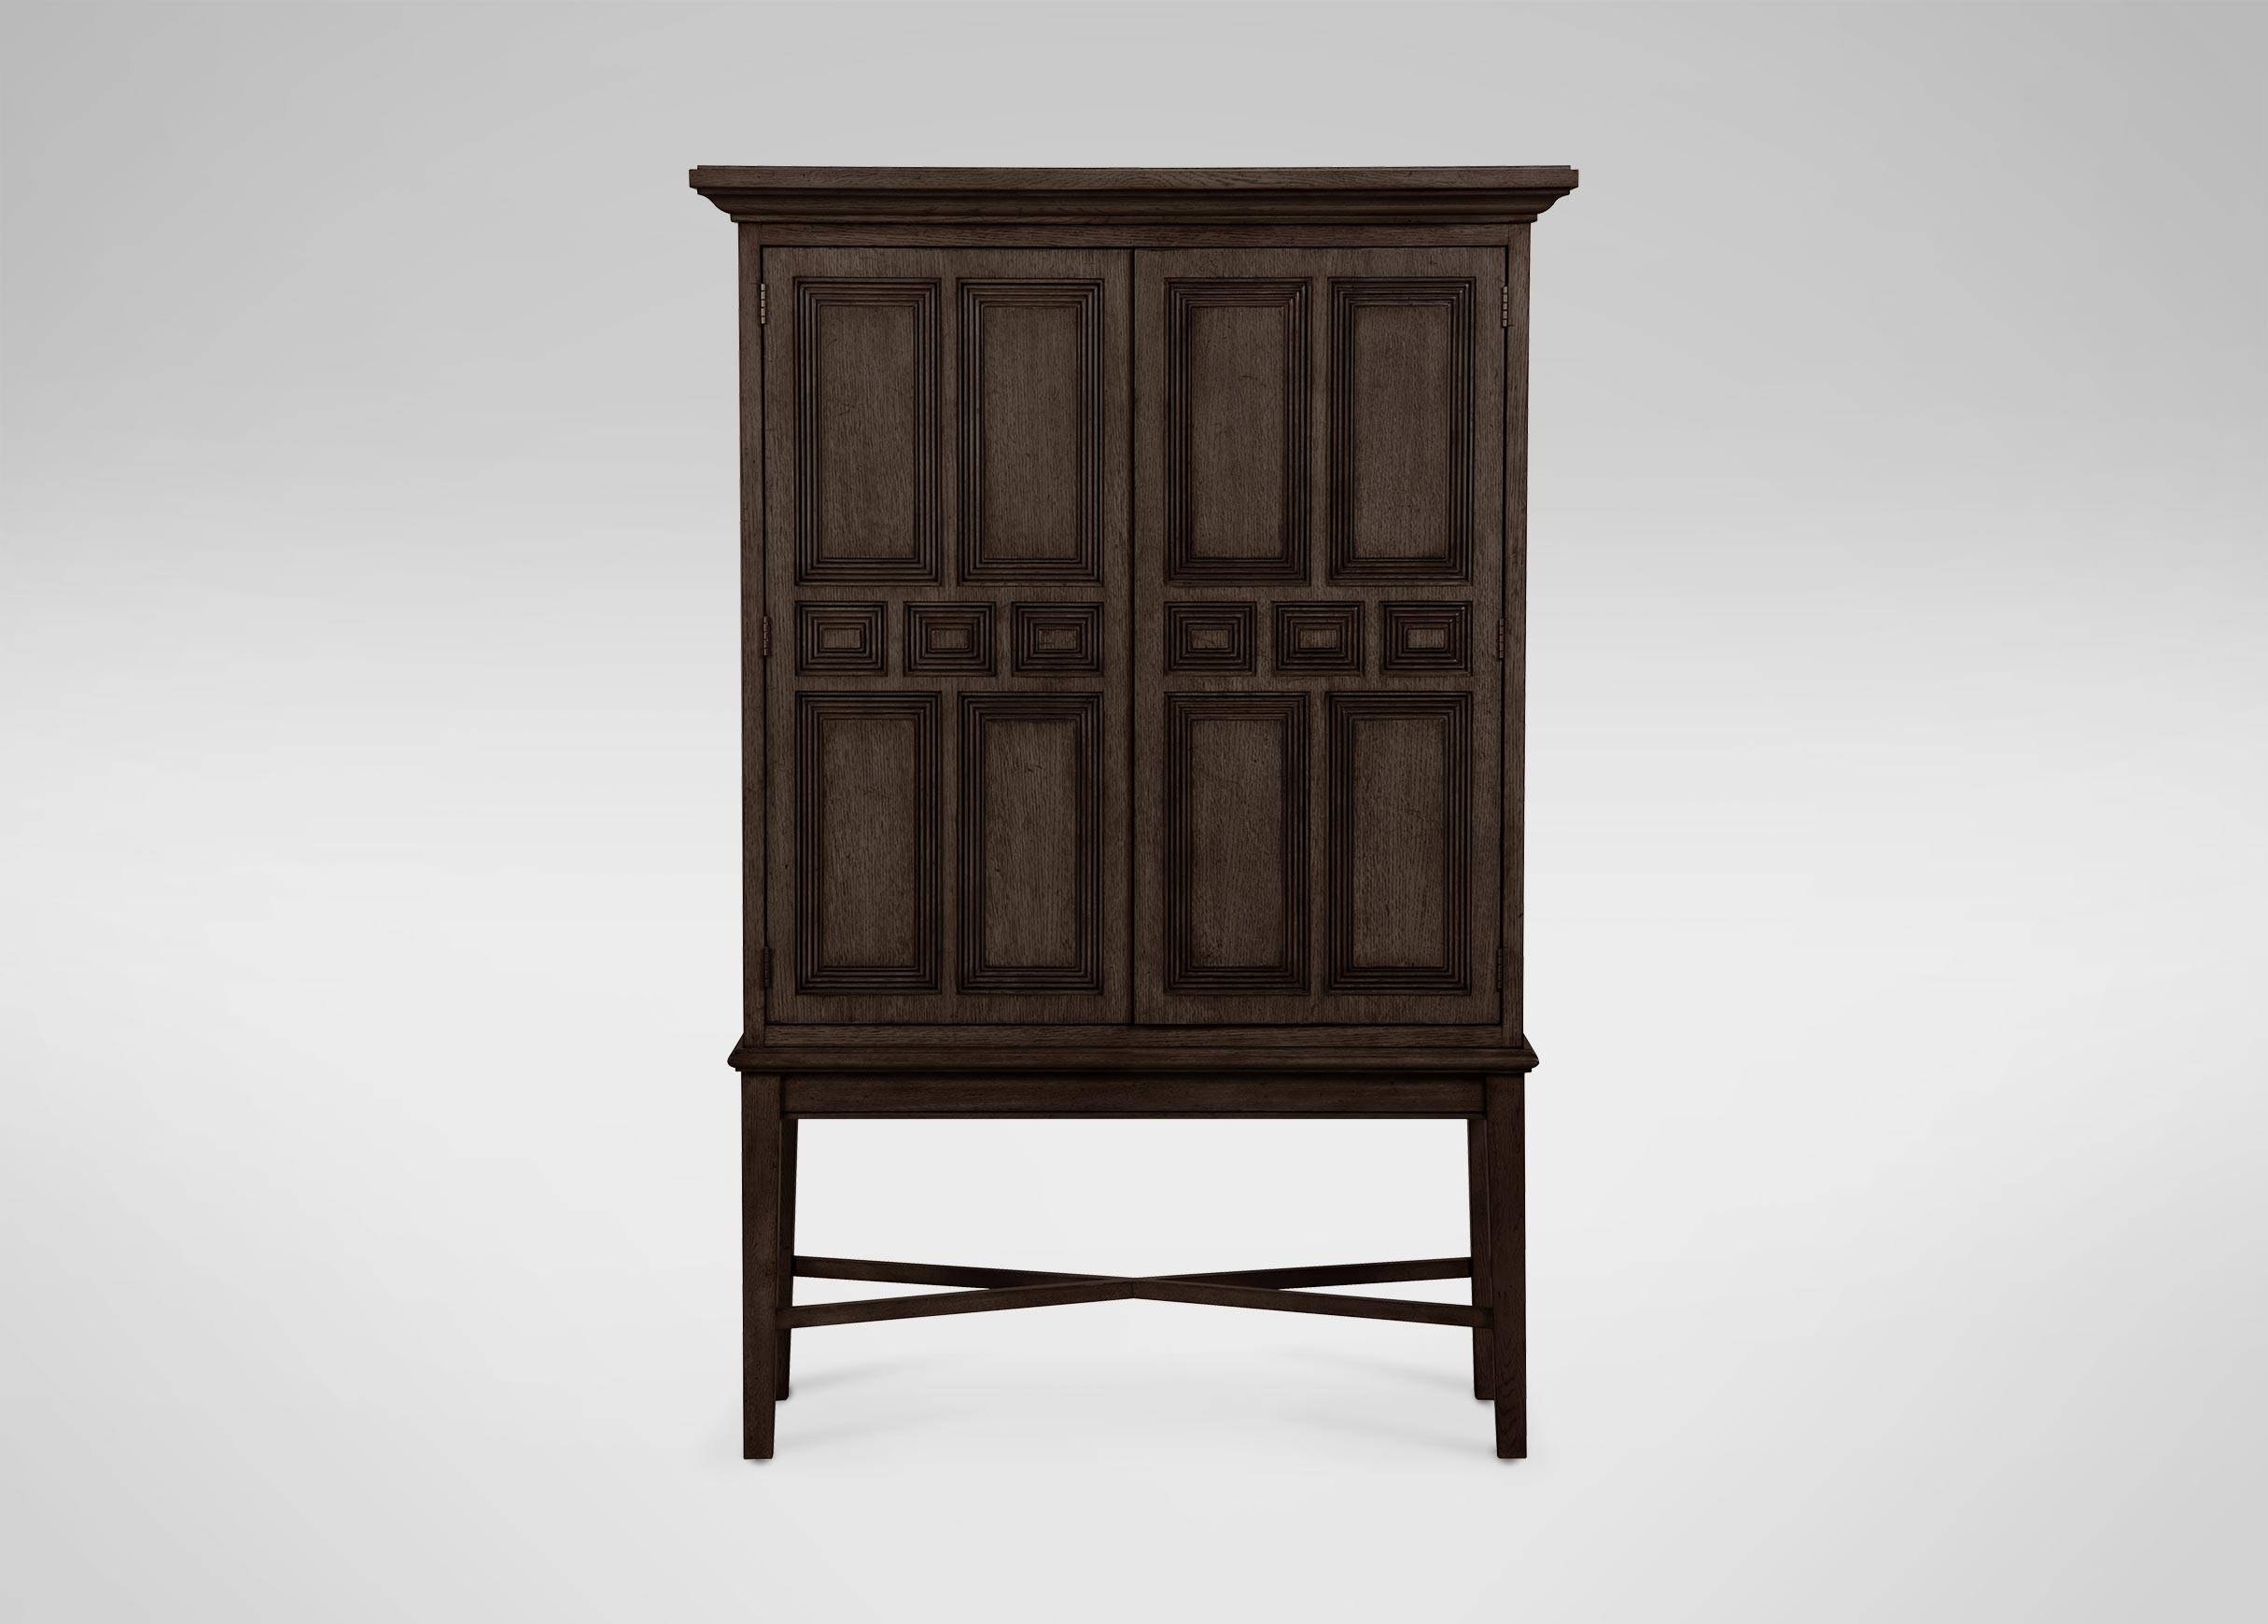 Shop Buffet Storage, Sideboards & Servers | Ethan Allen Within Most Popular Ethan Allen Sideboards (View 10 of 15)